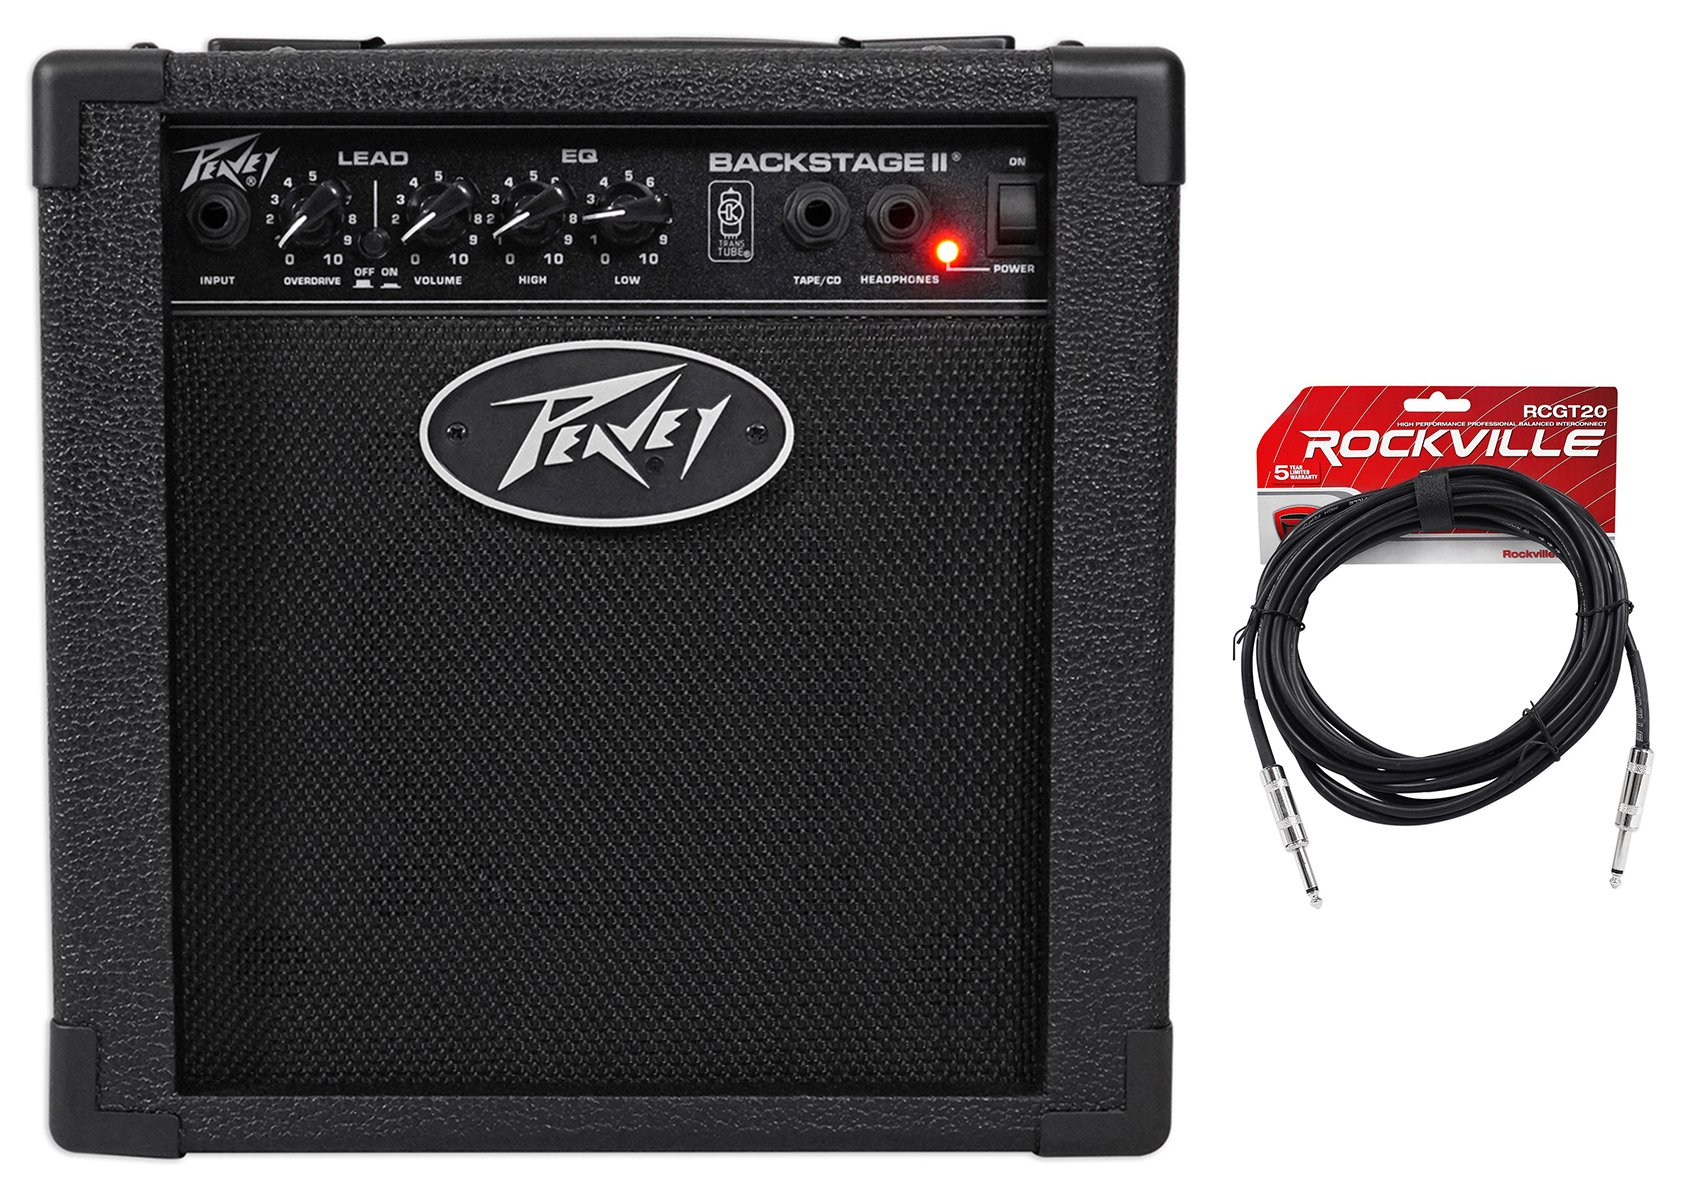 Peavey Backstage 10w Combo Guitar Amplifier+2 Switchable Channels + Guitar Cable